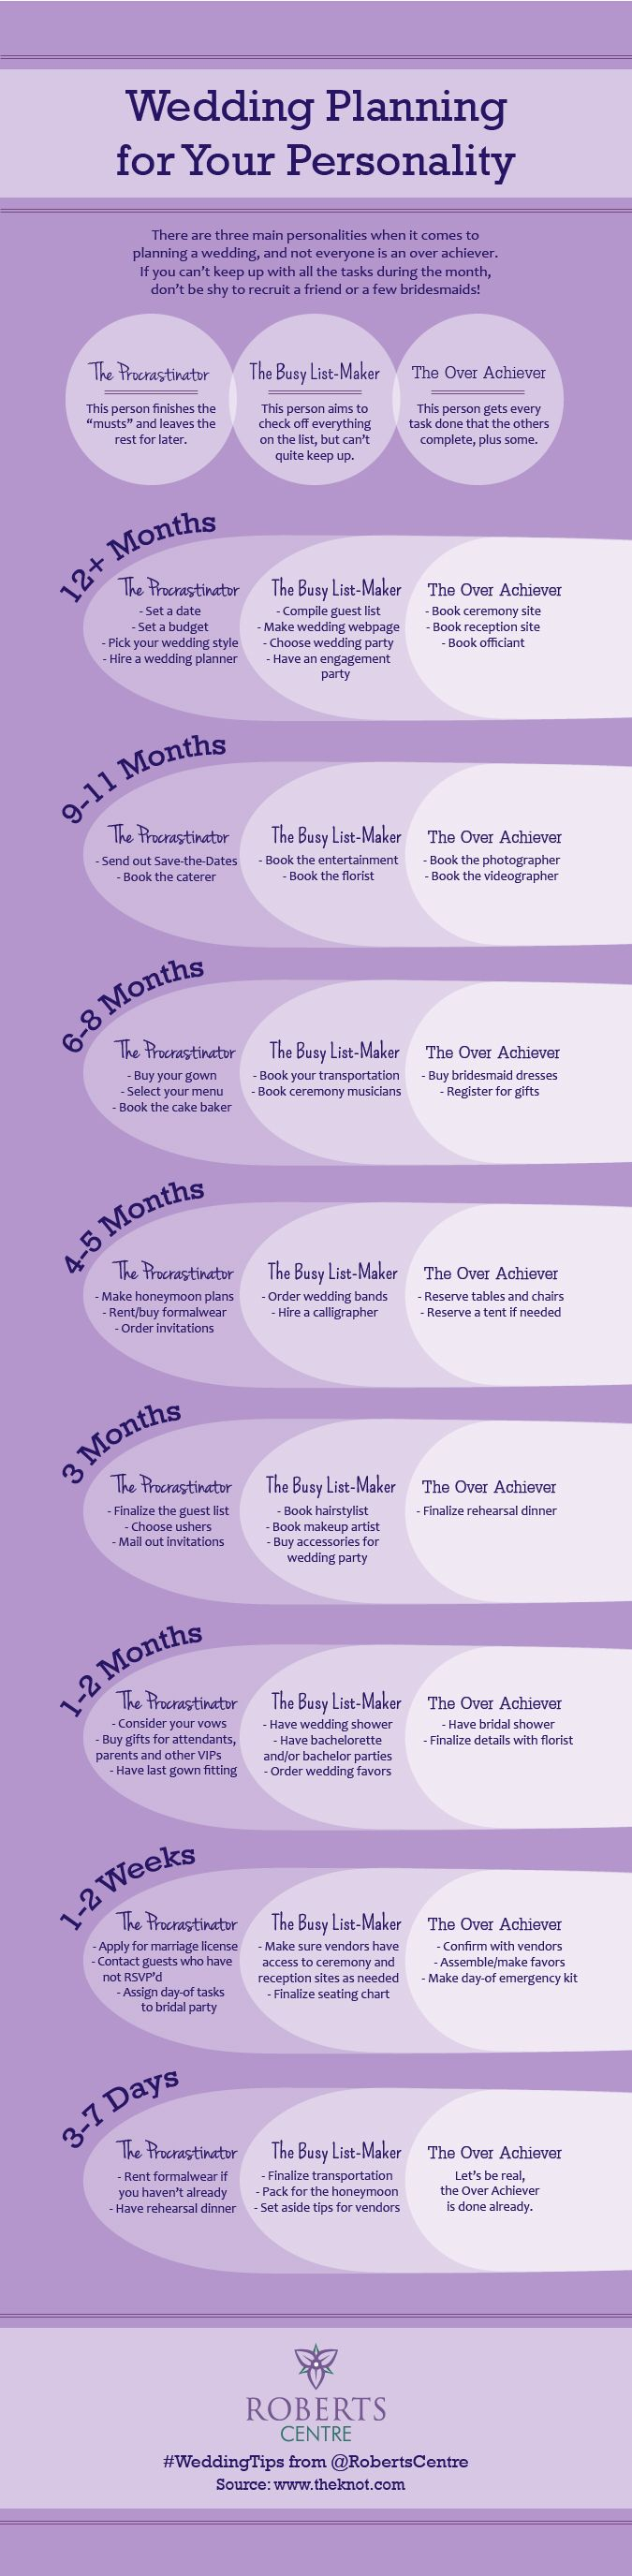 #Wedding Planning for Your Personality - Wedding Tips | Checklist #infographic